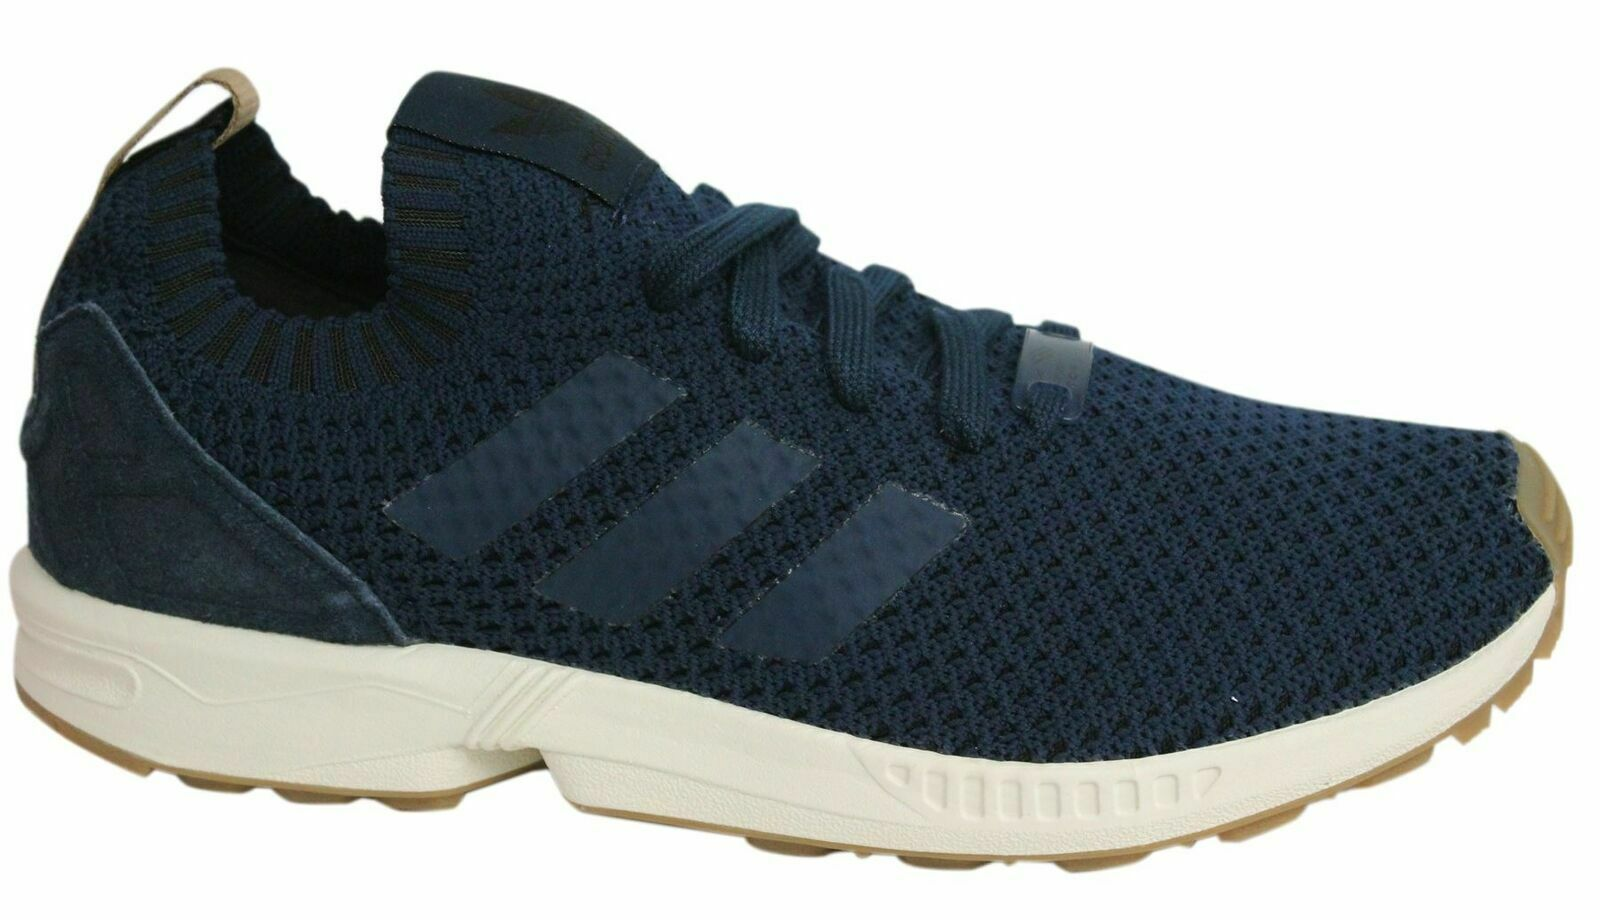 half off 78e6d 37ae2 Adidas ZX Flux PK Lace Up Navy Blue Knitted Textile Mens Trainers BA7372  U14 • $69.81